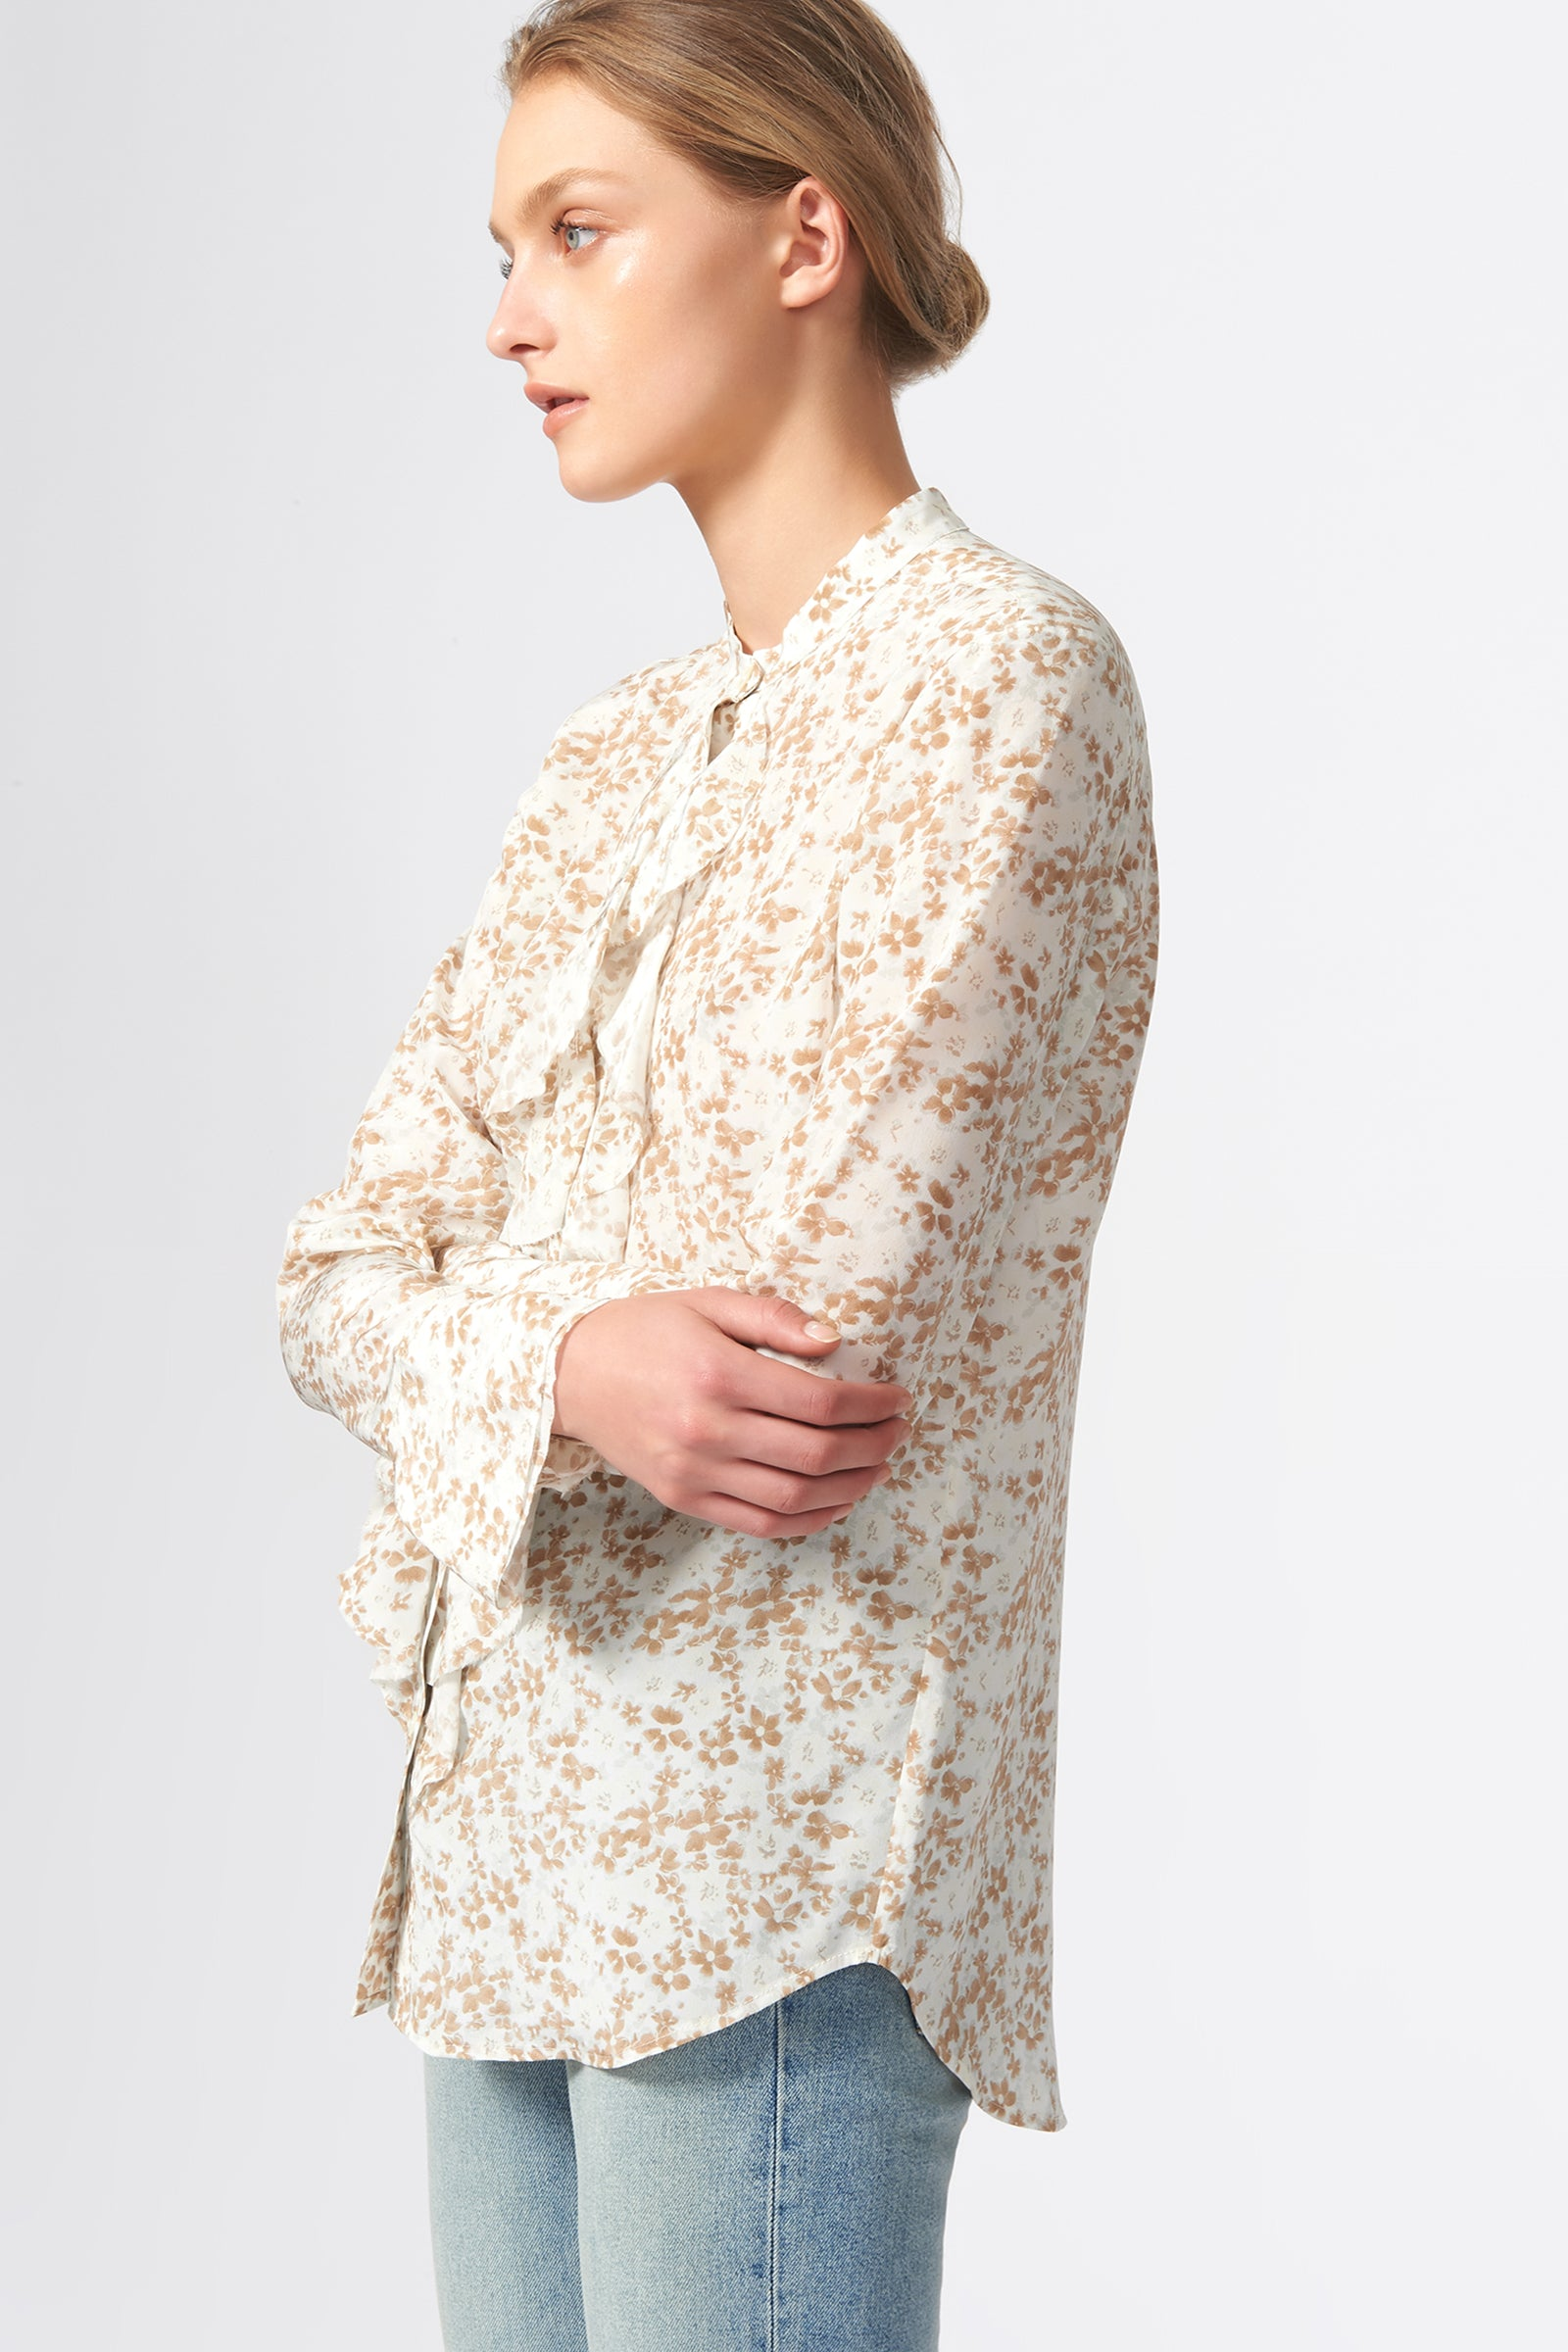 Kal Rieman Ruffle Front Blouse in Ivory Floral Print on Model Side View